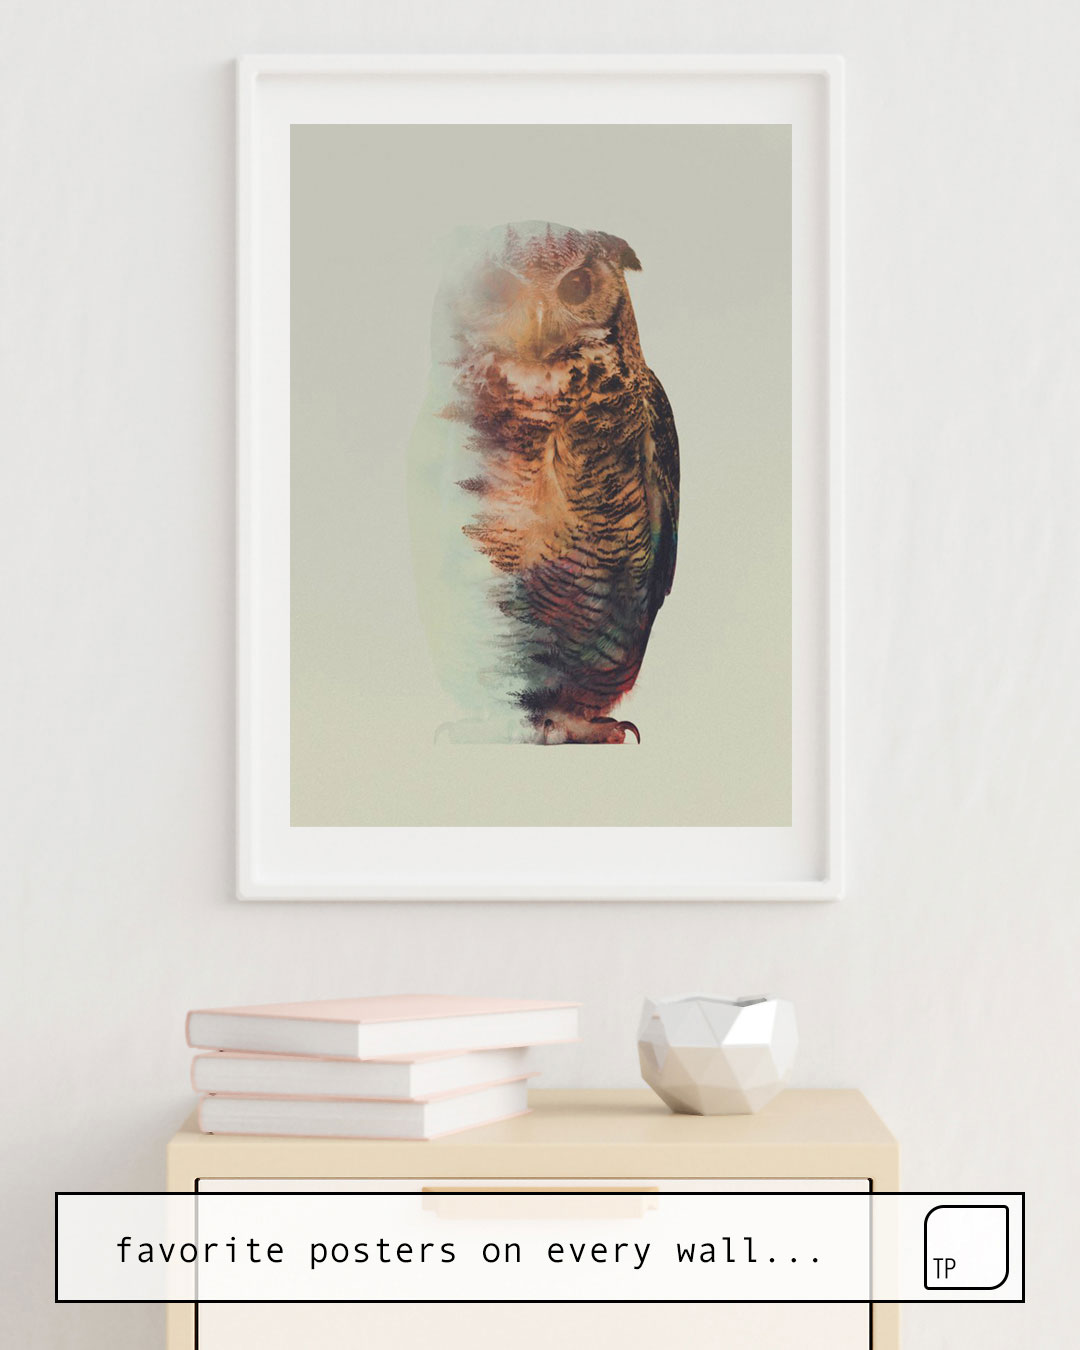 Poster | NORWEGIAN WOODS: THE OWL by Andreas Lie